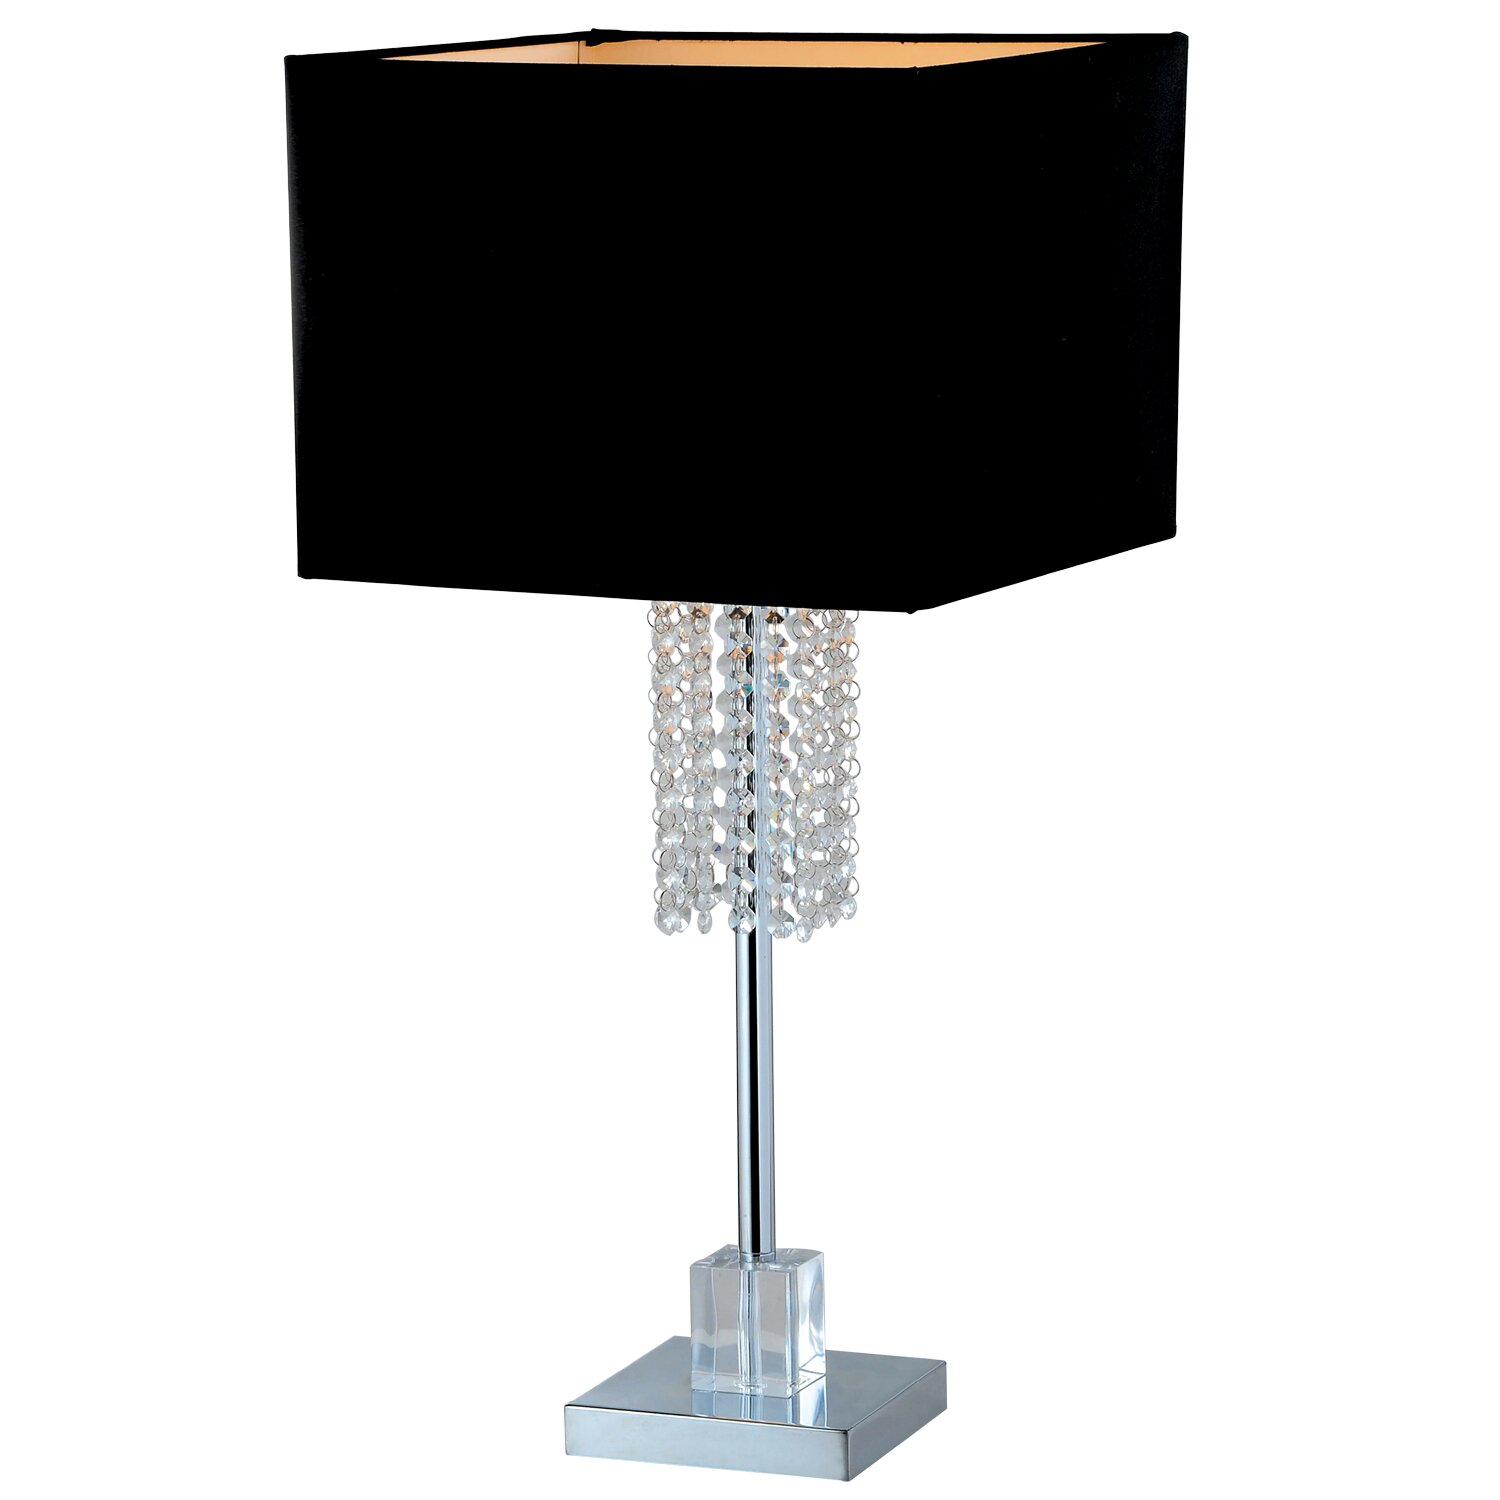 "Artiva USA Adelyn 27"" Table Lamp with Square Shade ..."